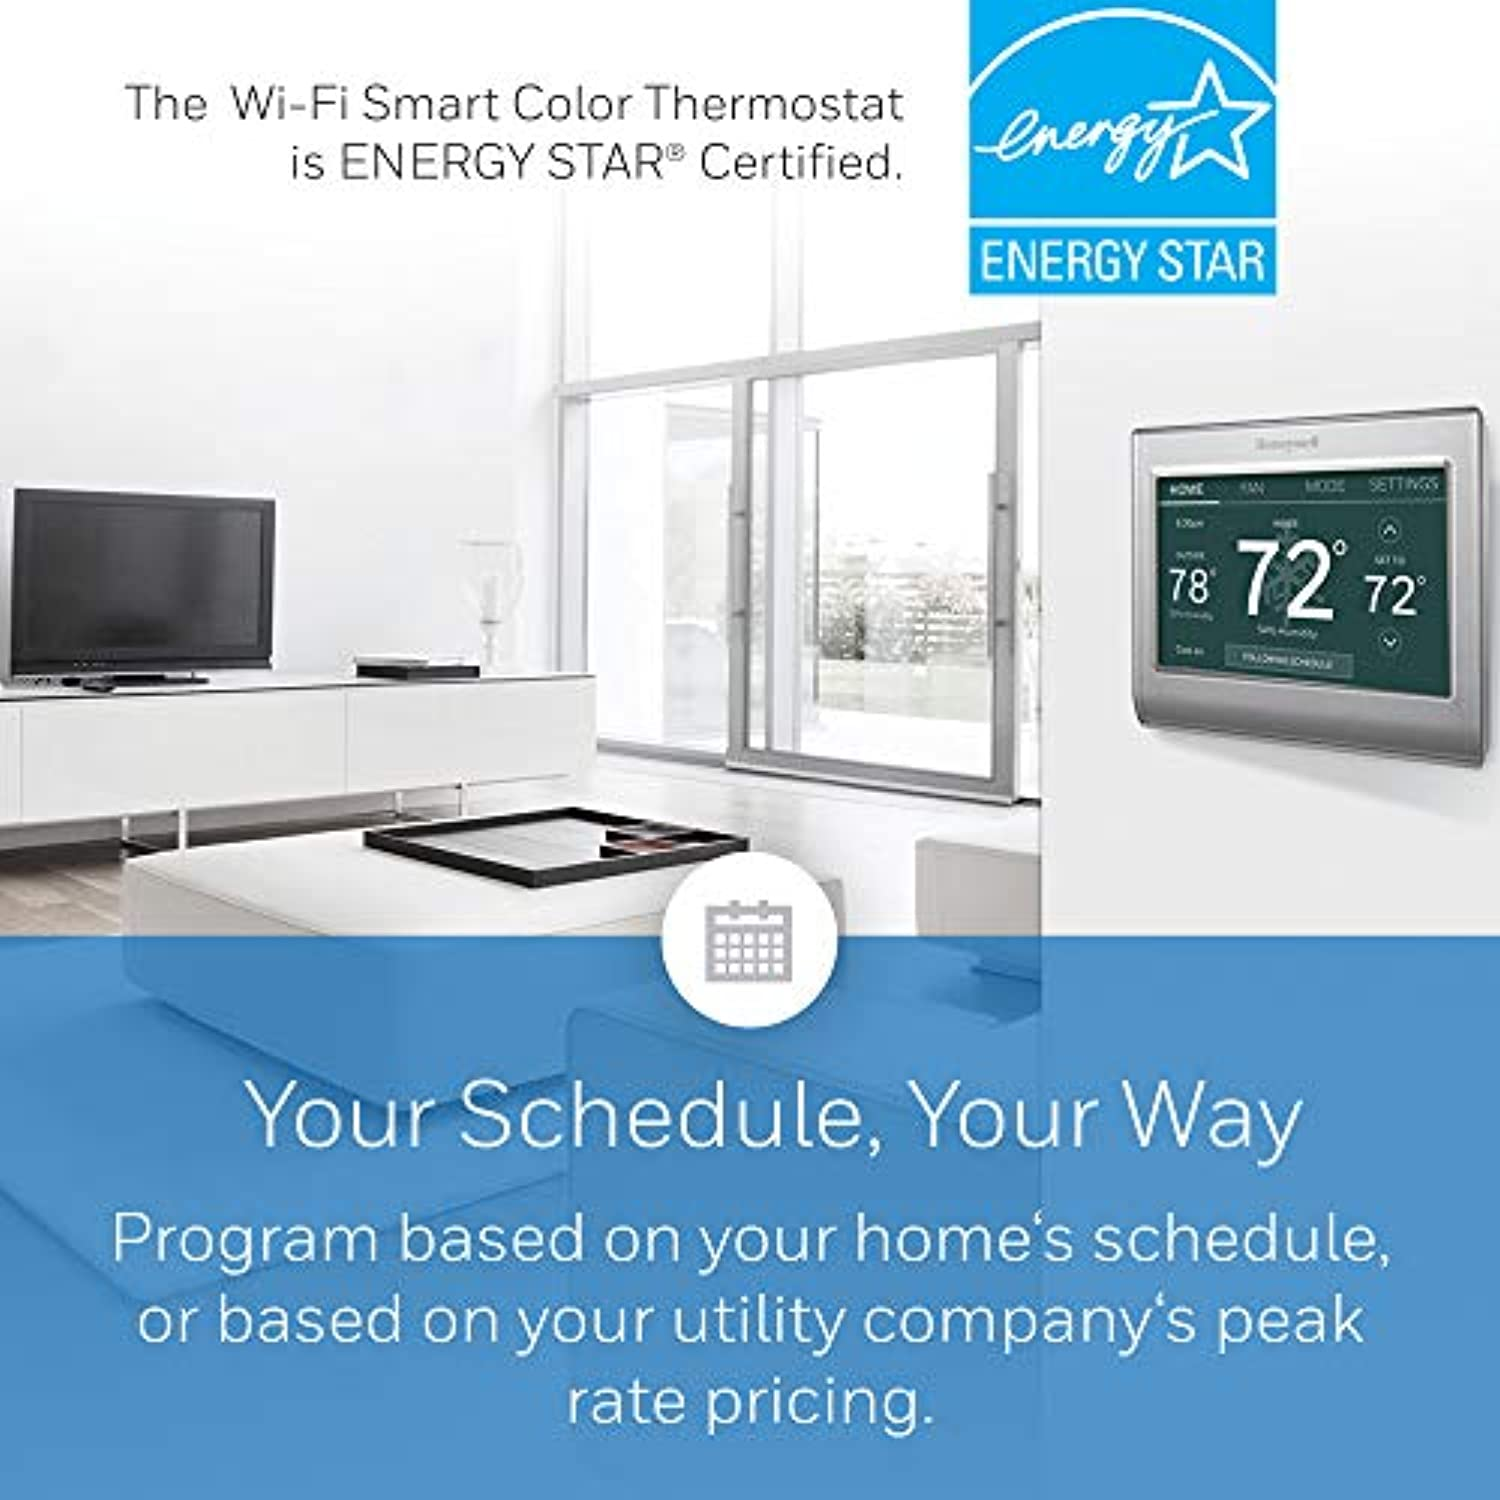 Classier: Buy Honeywell Honeywell Home RTH9585WF1004 Wi-Fi Smart Color Thermostat, 7 Day Programmable, Touch Screen, Energy Star, Alexa Ready